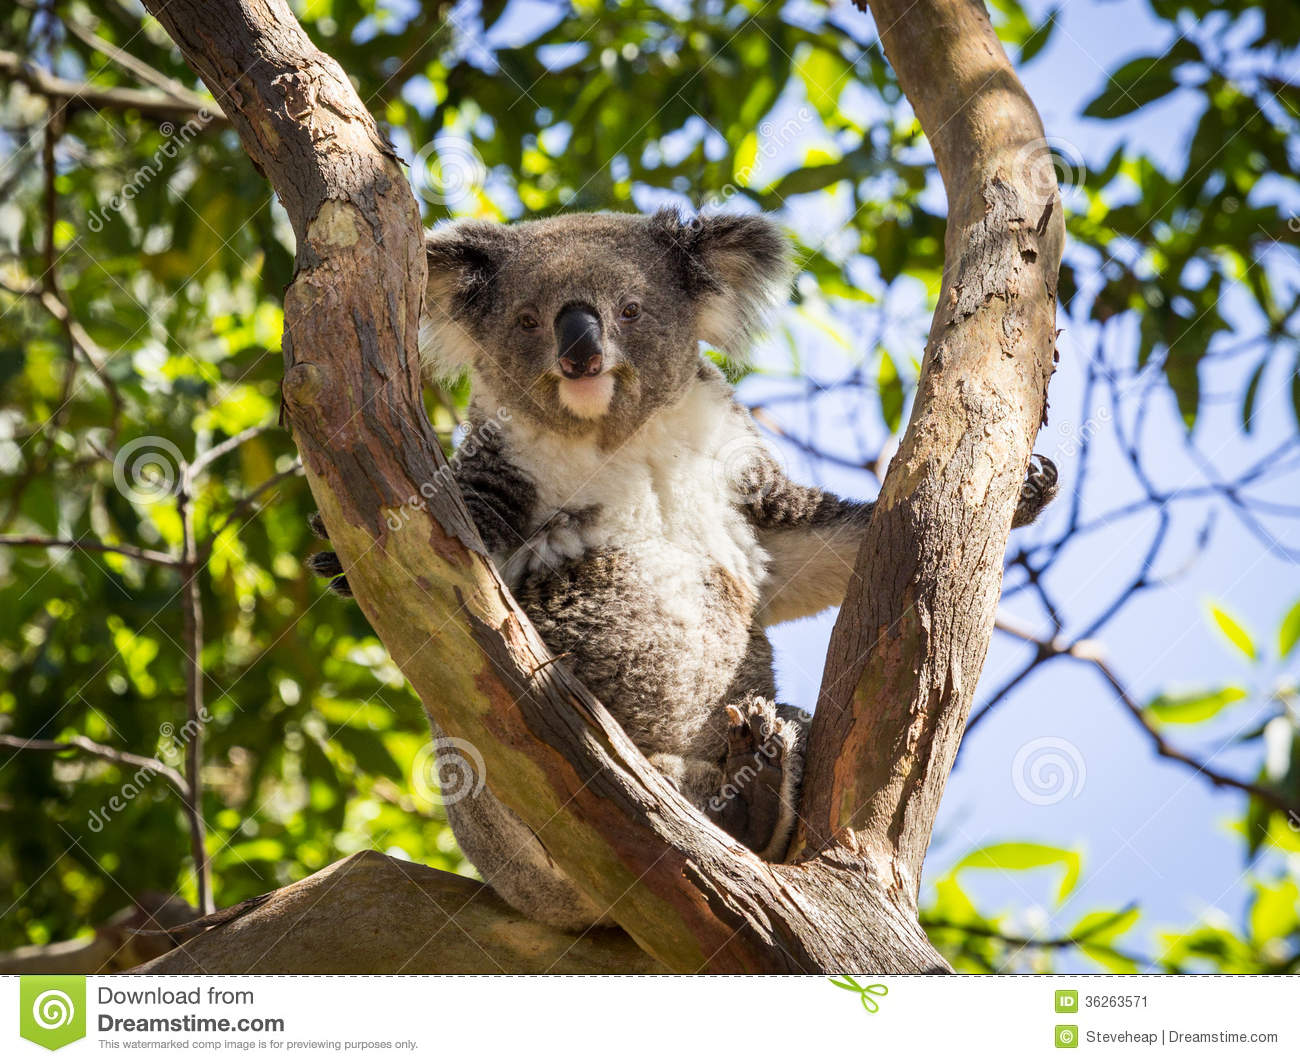 Close Up Of Koala Bear In Tree Stock Image - Image: 36263571